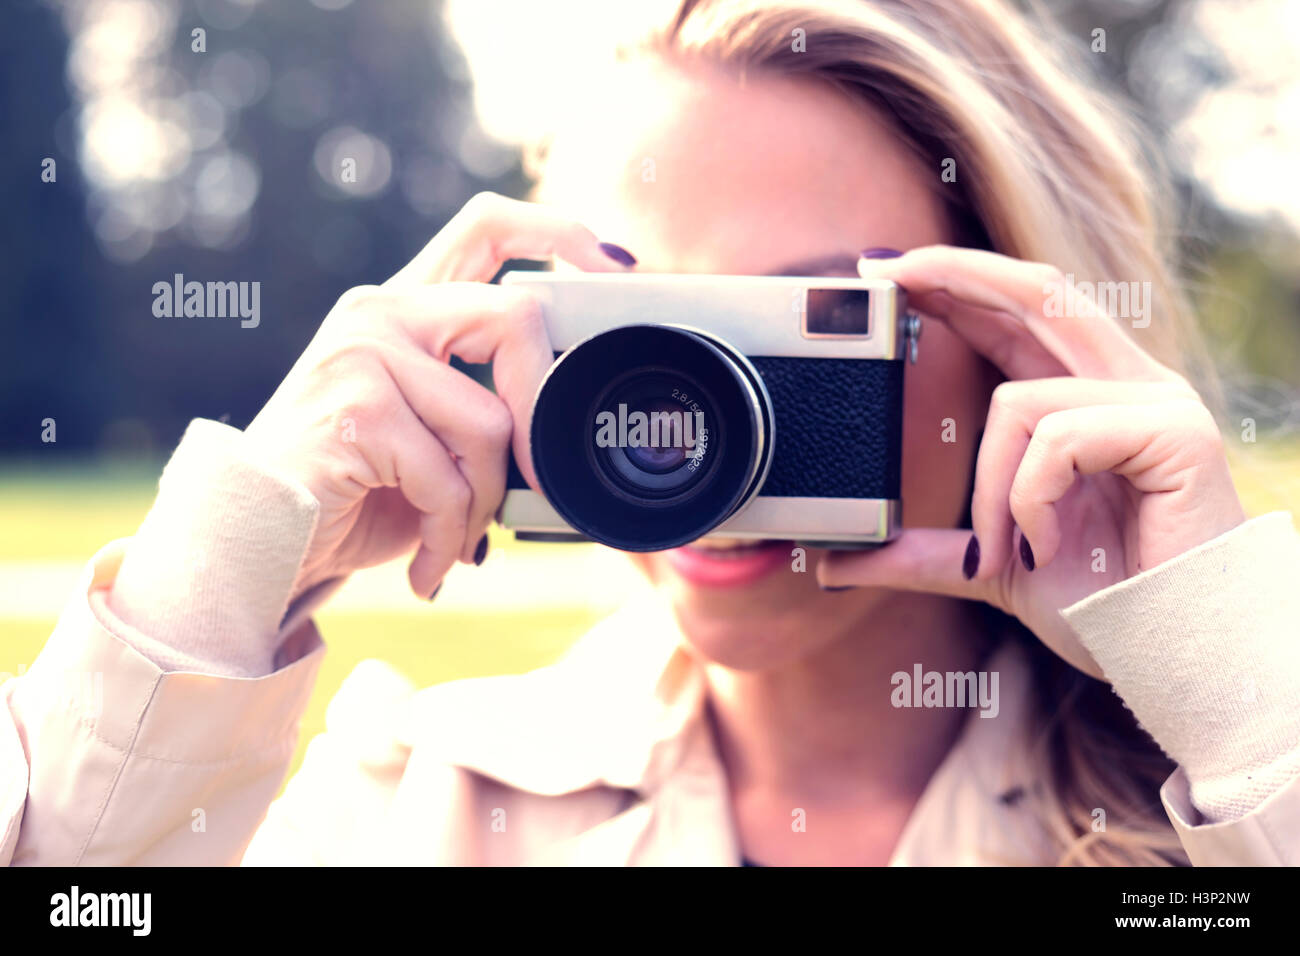 Young woman taking photo with old foto camera - Stock Image